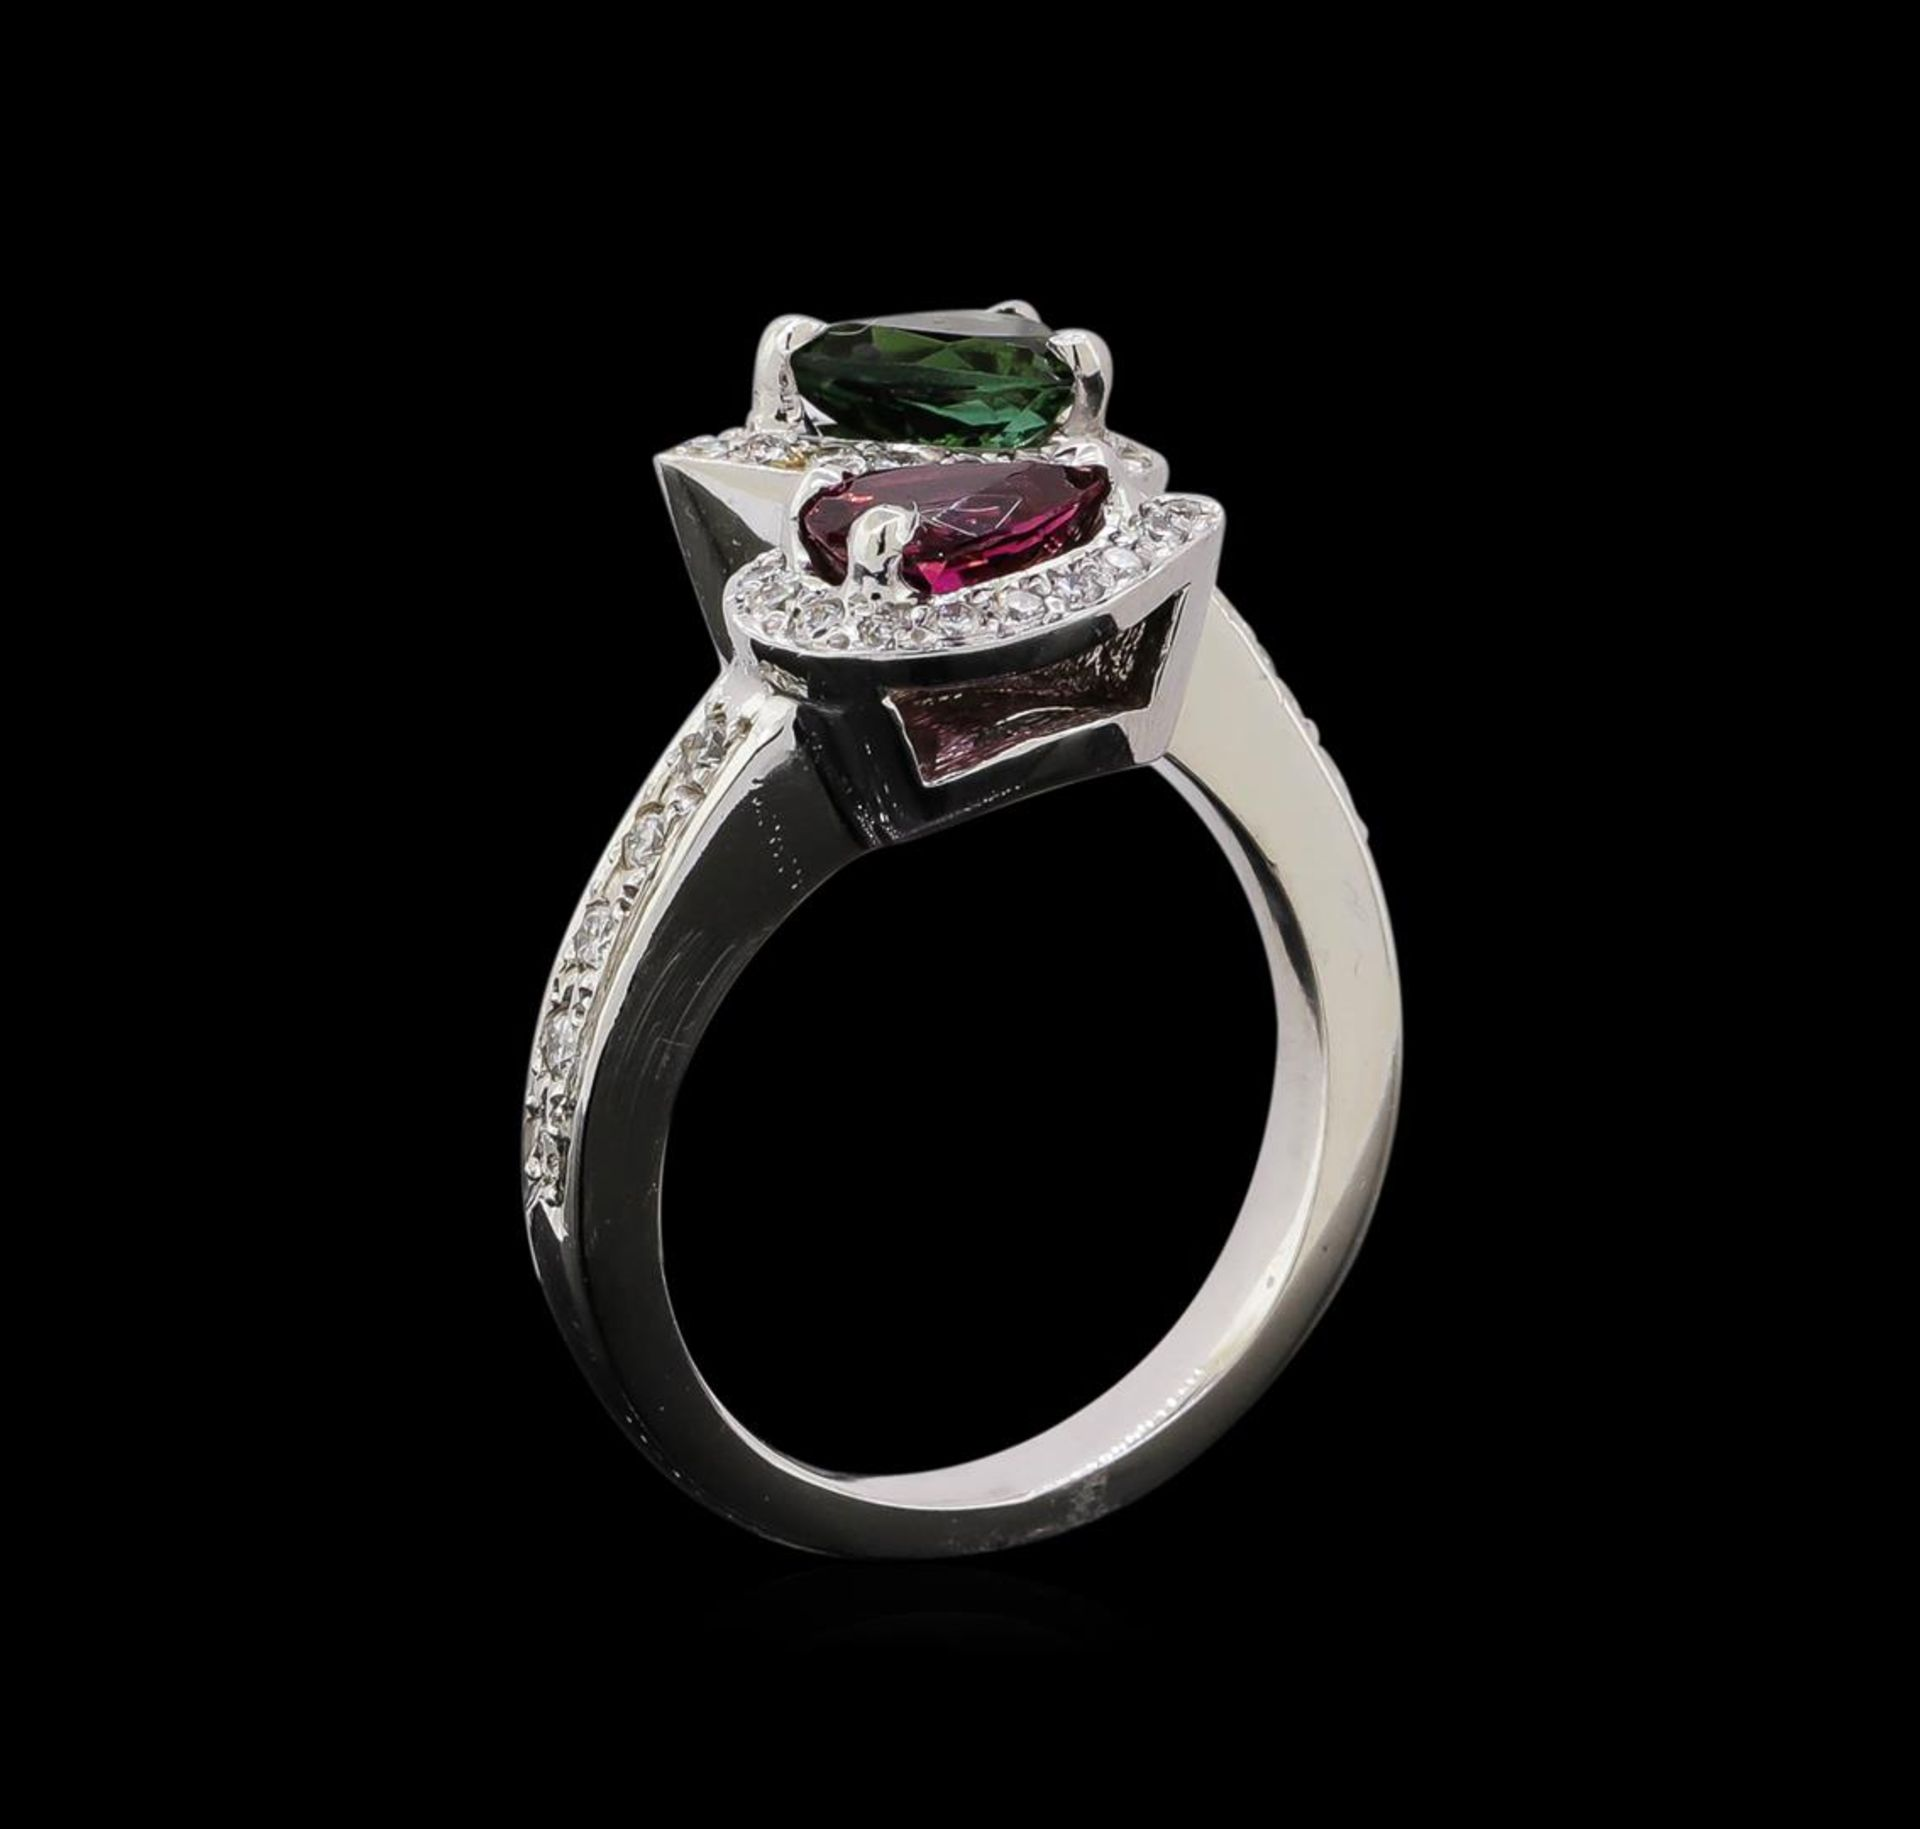 1.22 ctw Tourmaline and Diamond Ring - 14KT White Gold - Image 4 of 4